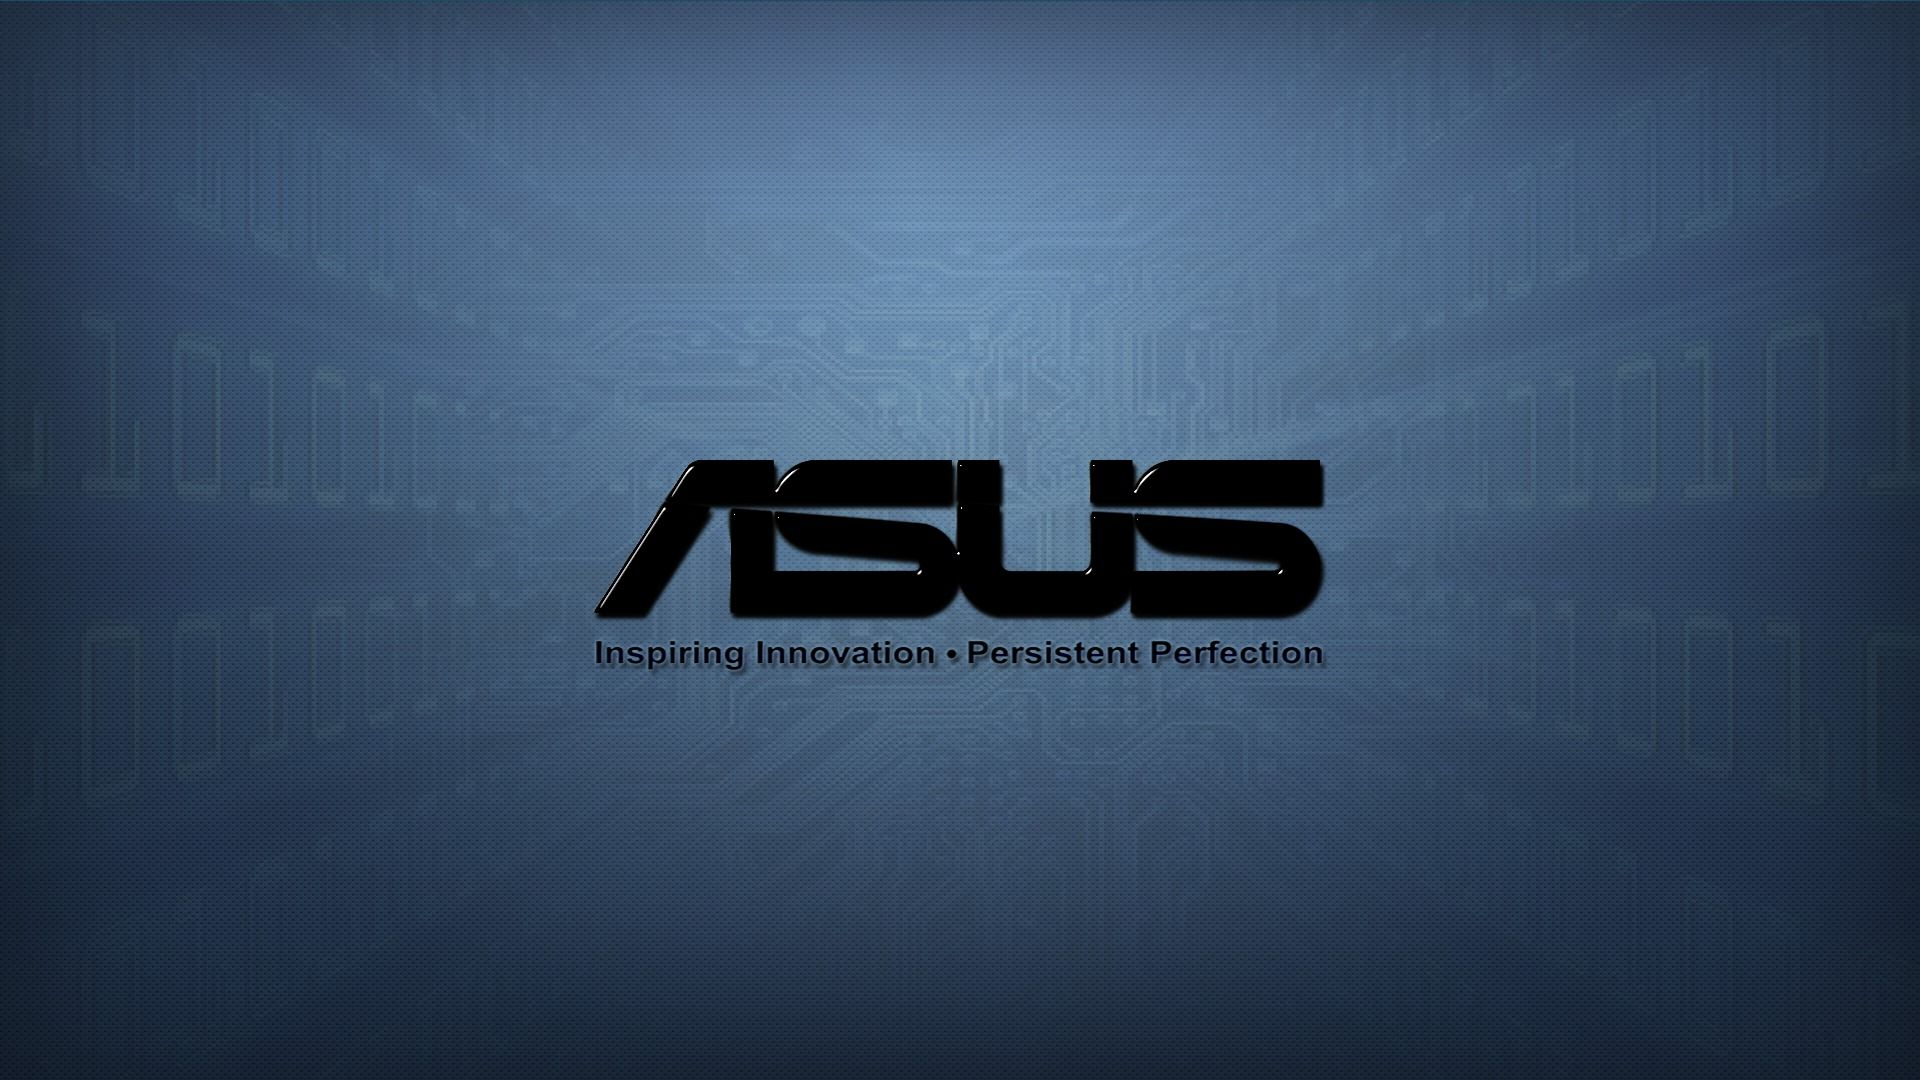 Asus HD Wallpapers Backgrounds Wallpaper 1920x1080 Hd 40